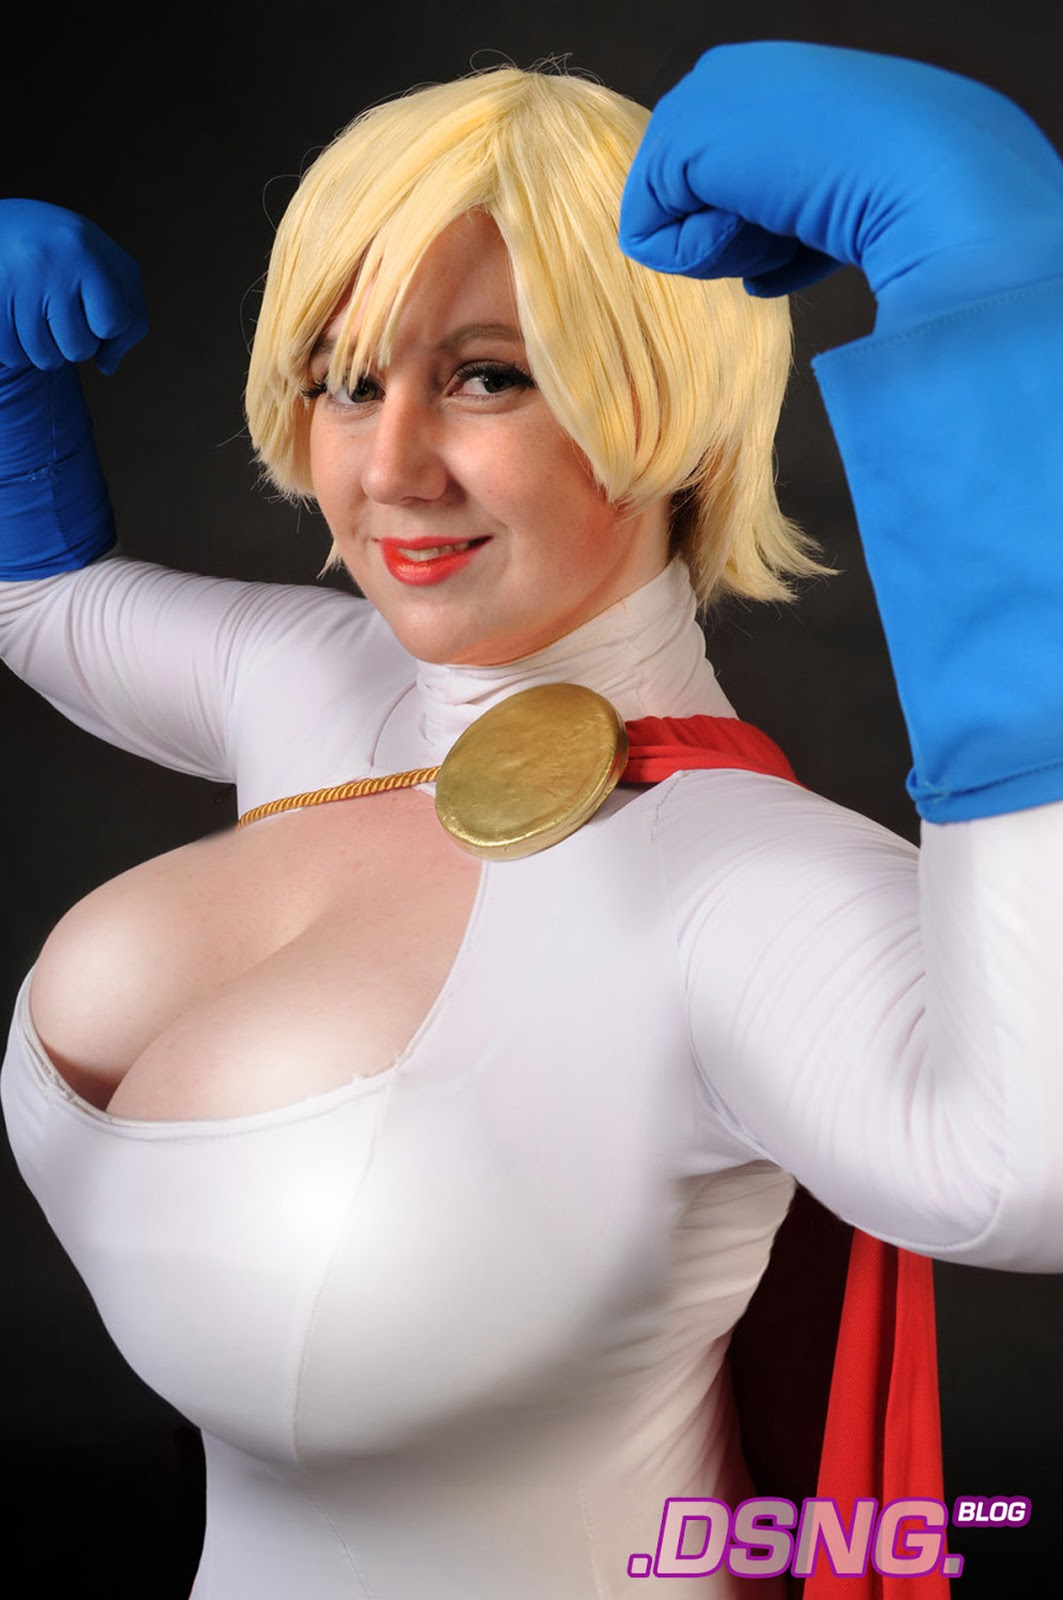 Huge Cosplay Boobs